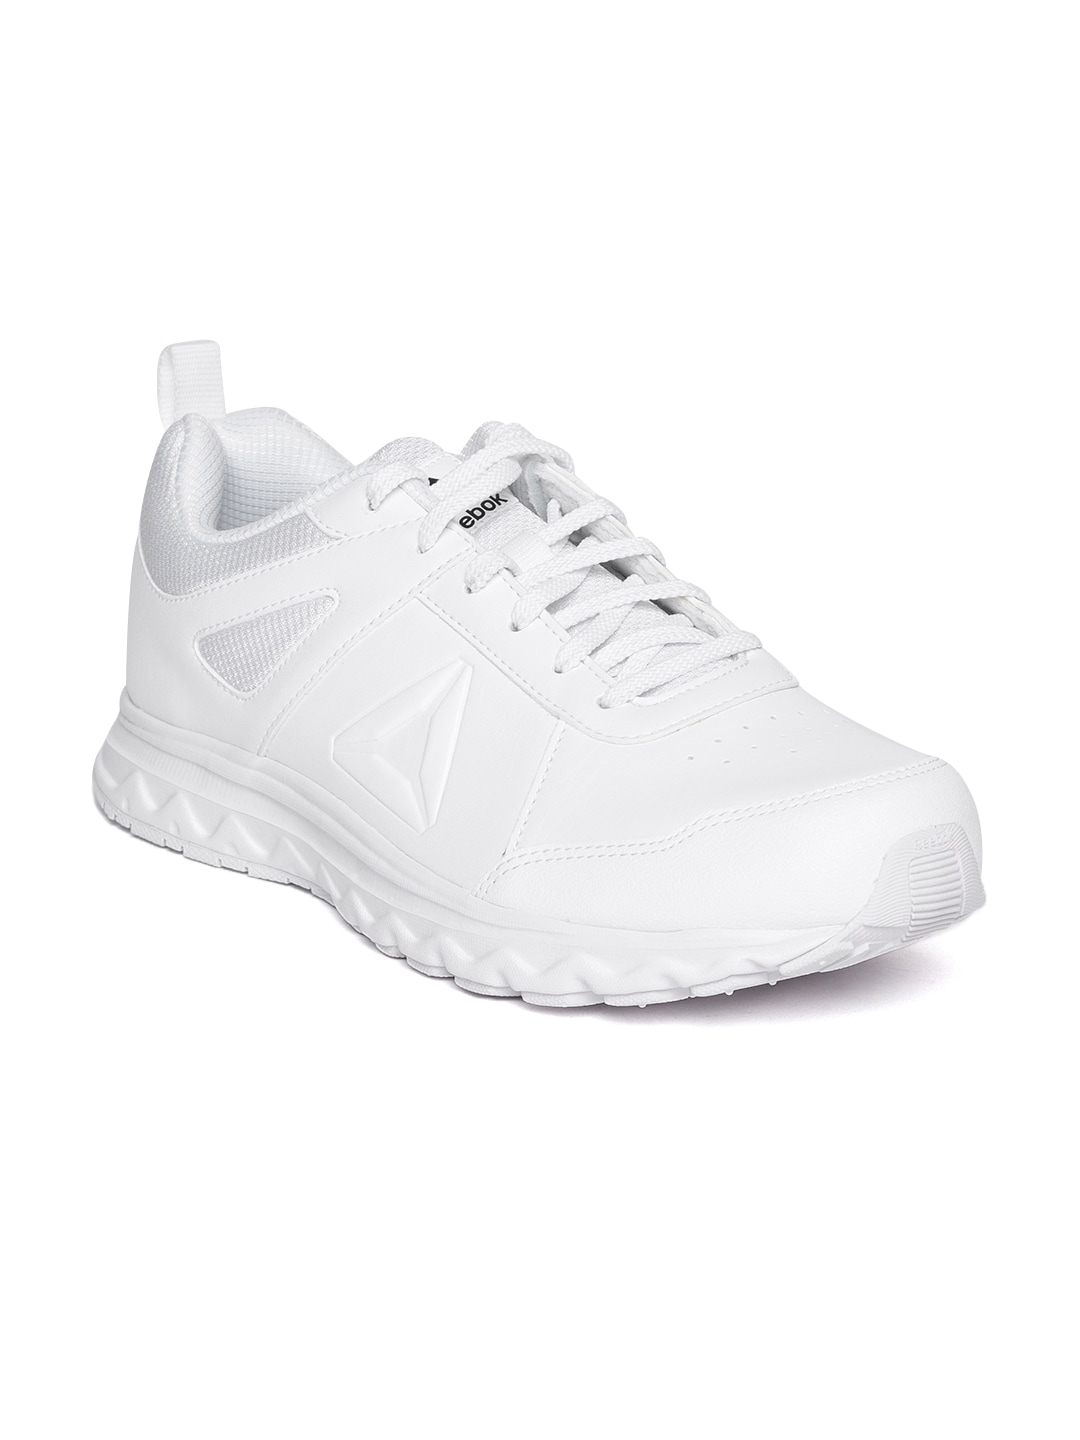 a5a6828f76f Reebok Non Marking Shoes - Buy Reebok Non Marking Shoes online in India